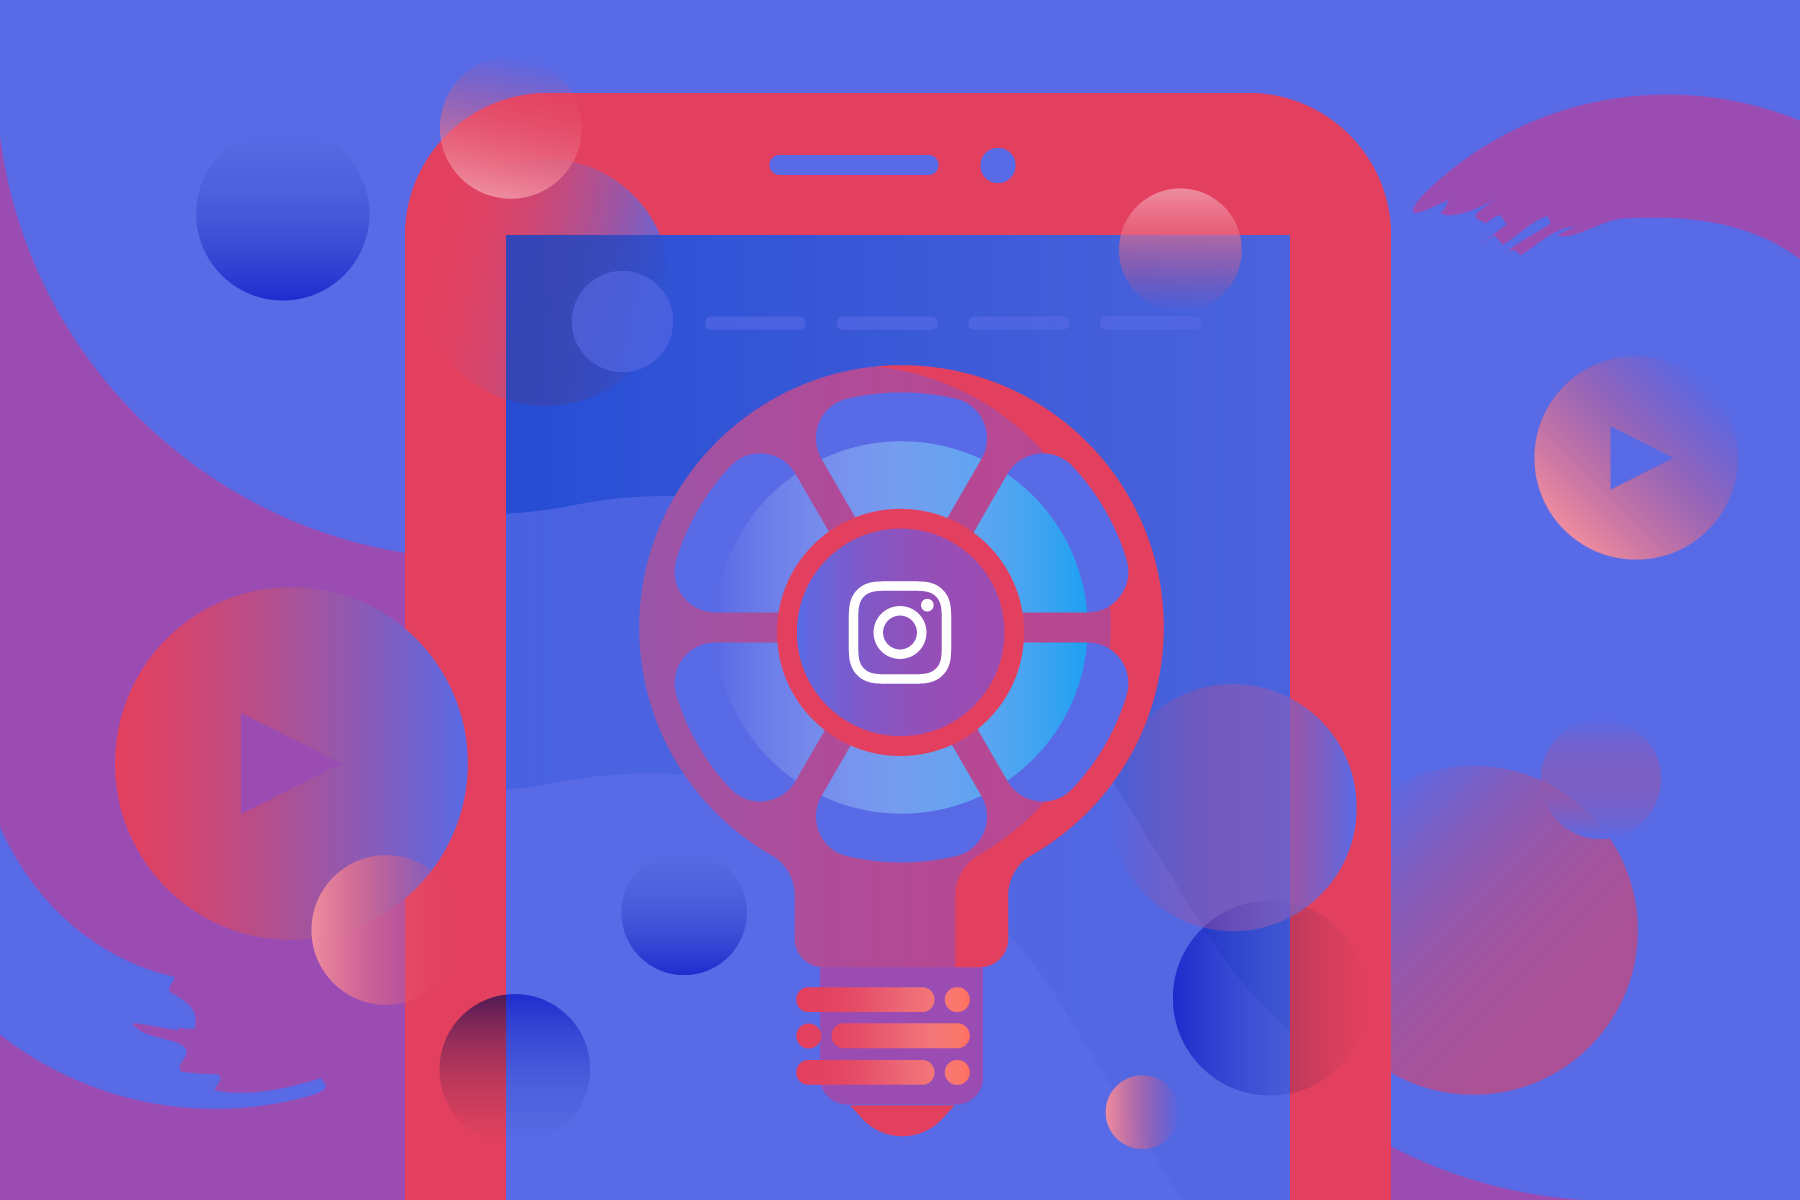 15 Easy Instagram Story Ideas for Brands (Plus Templates) - Animoto